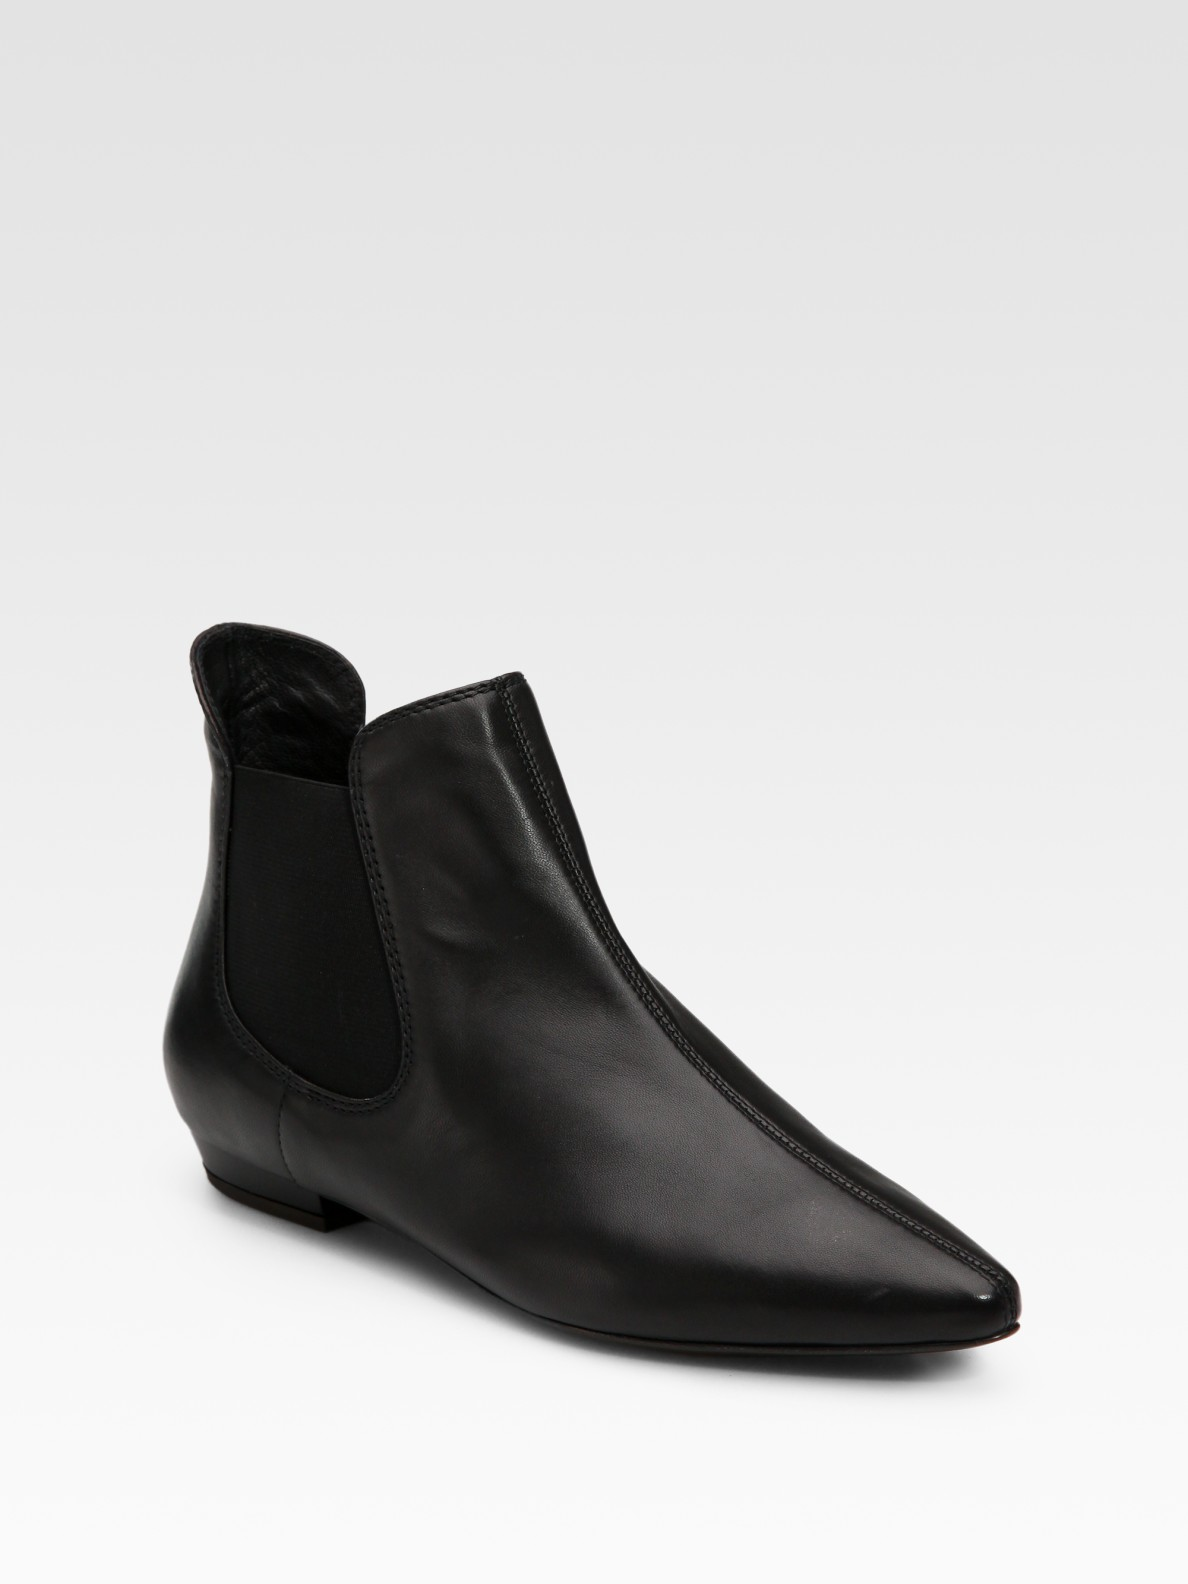 giuseppe zanotti flat leather ankle boots in black lyst